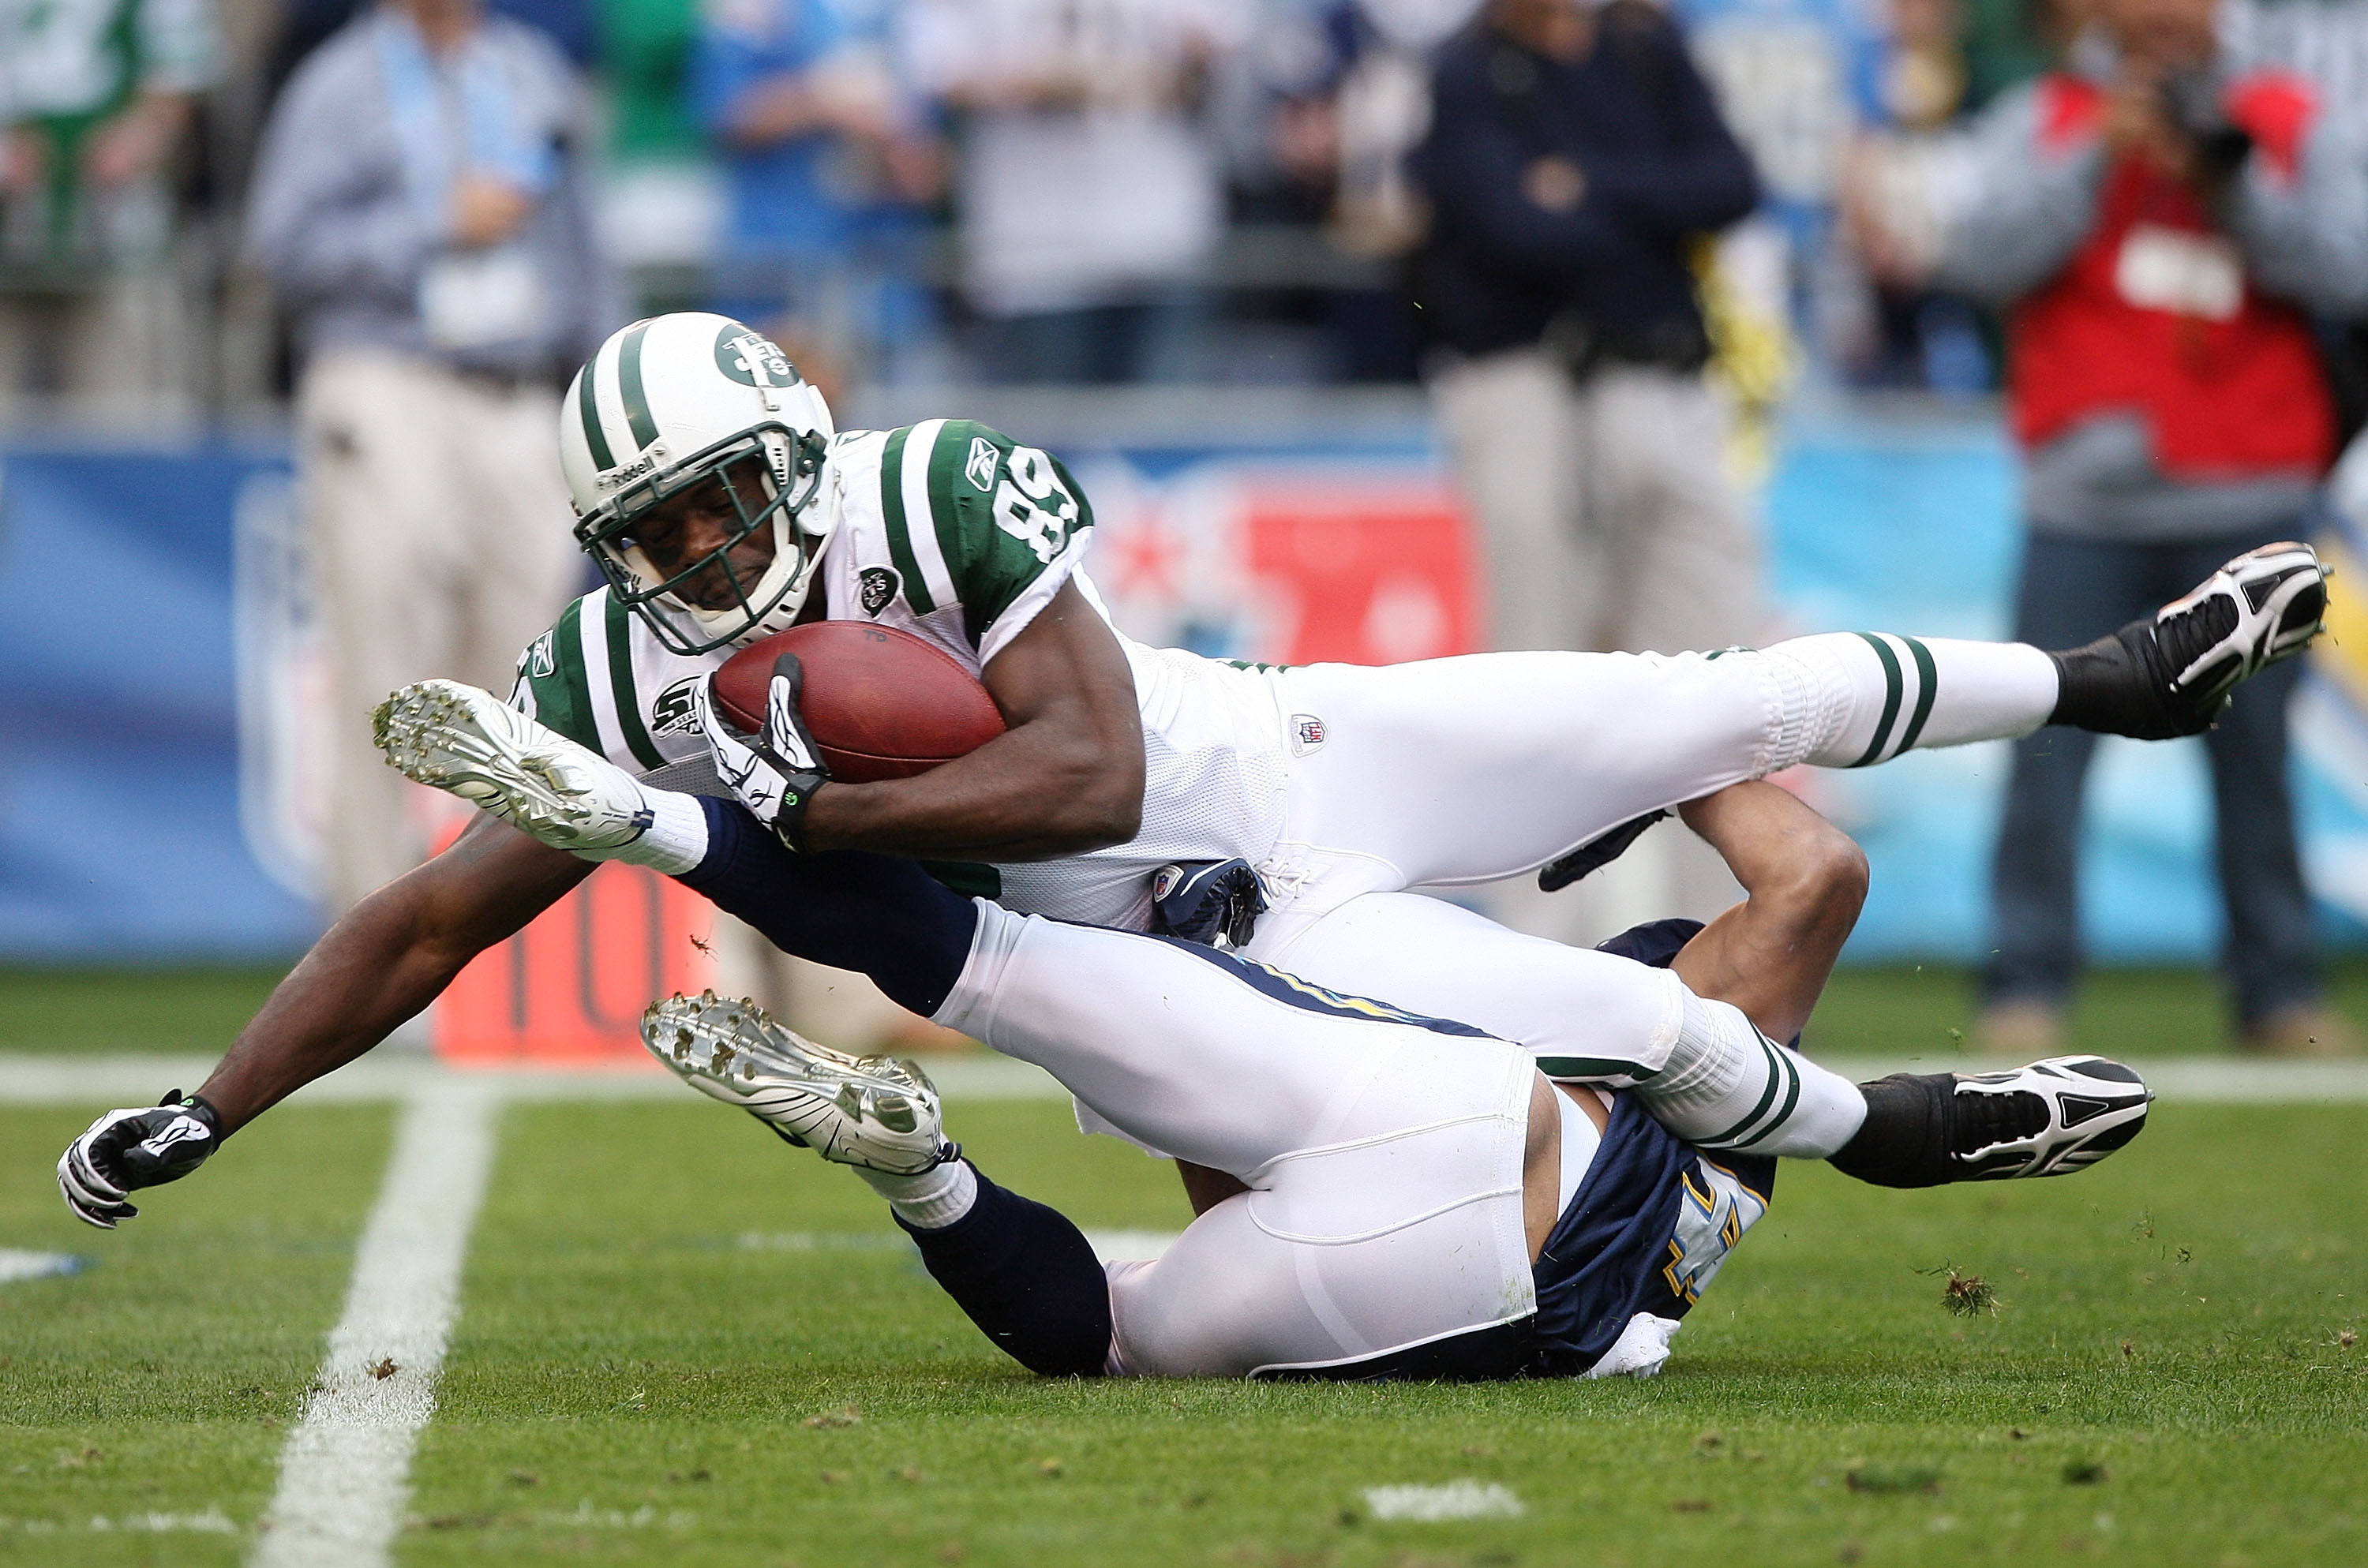 SAN DIEGO - JANUARY 17:  Wide receiver Jerricho Cotchery #89 of the New York Jets is tackled after making a catch against the San Diego Chargers during the AFC Divisional Playoff Game at Qualcomm Stadium on January 17, 2010 in San Diego, California.  (Pho